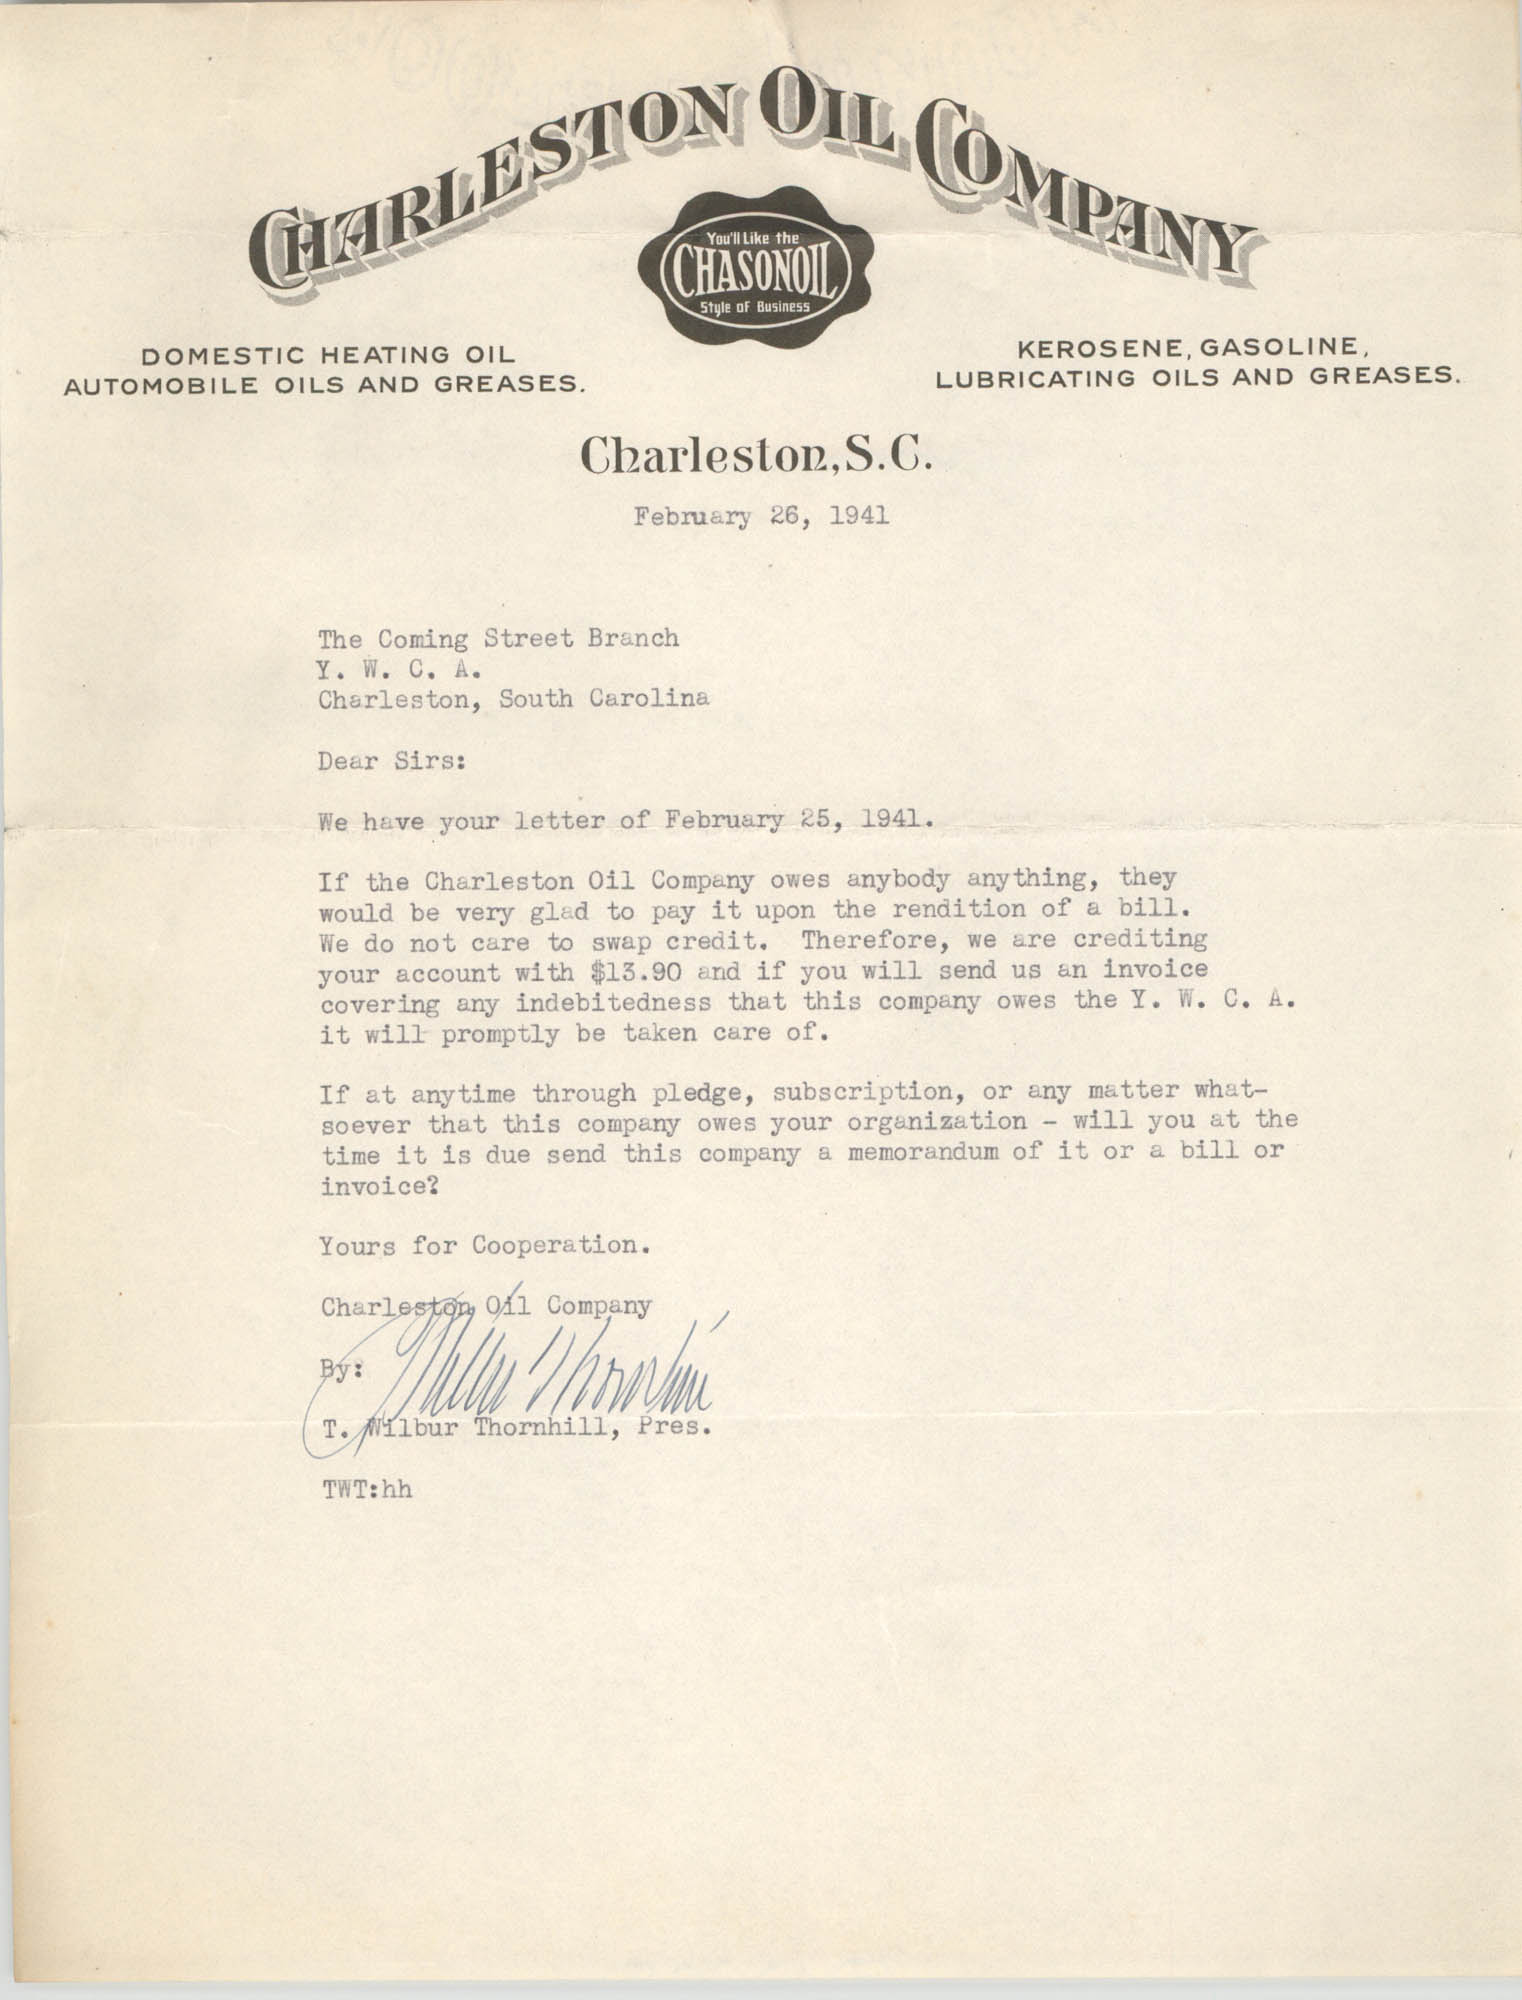 Letter from T. Wilbur Thornhill to Coming Street Y.W.C.A., February 26, 1941